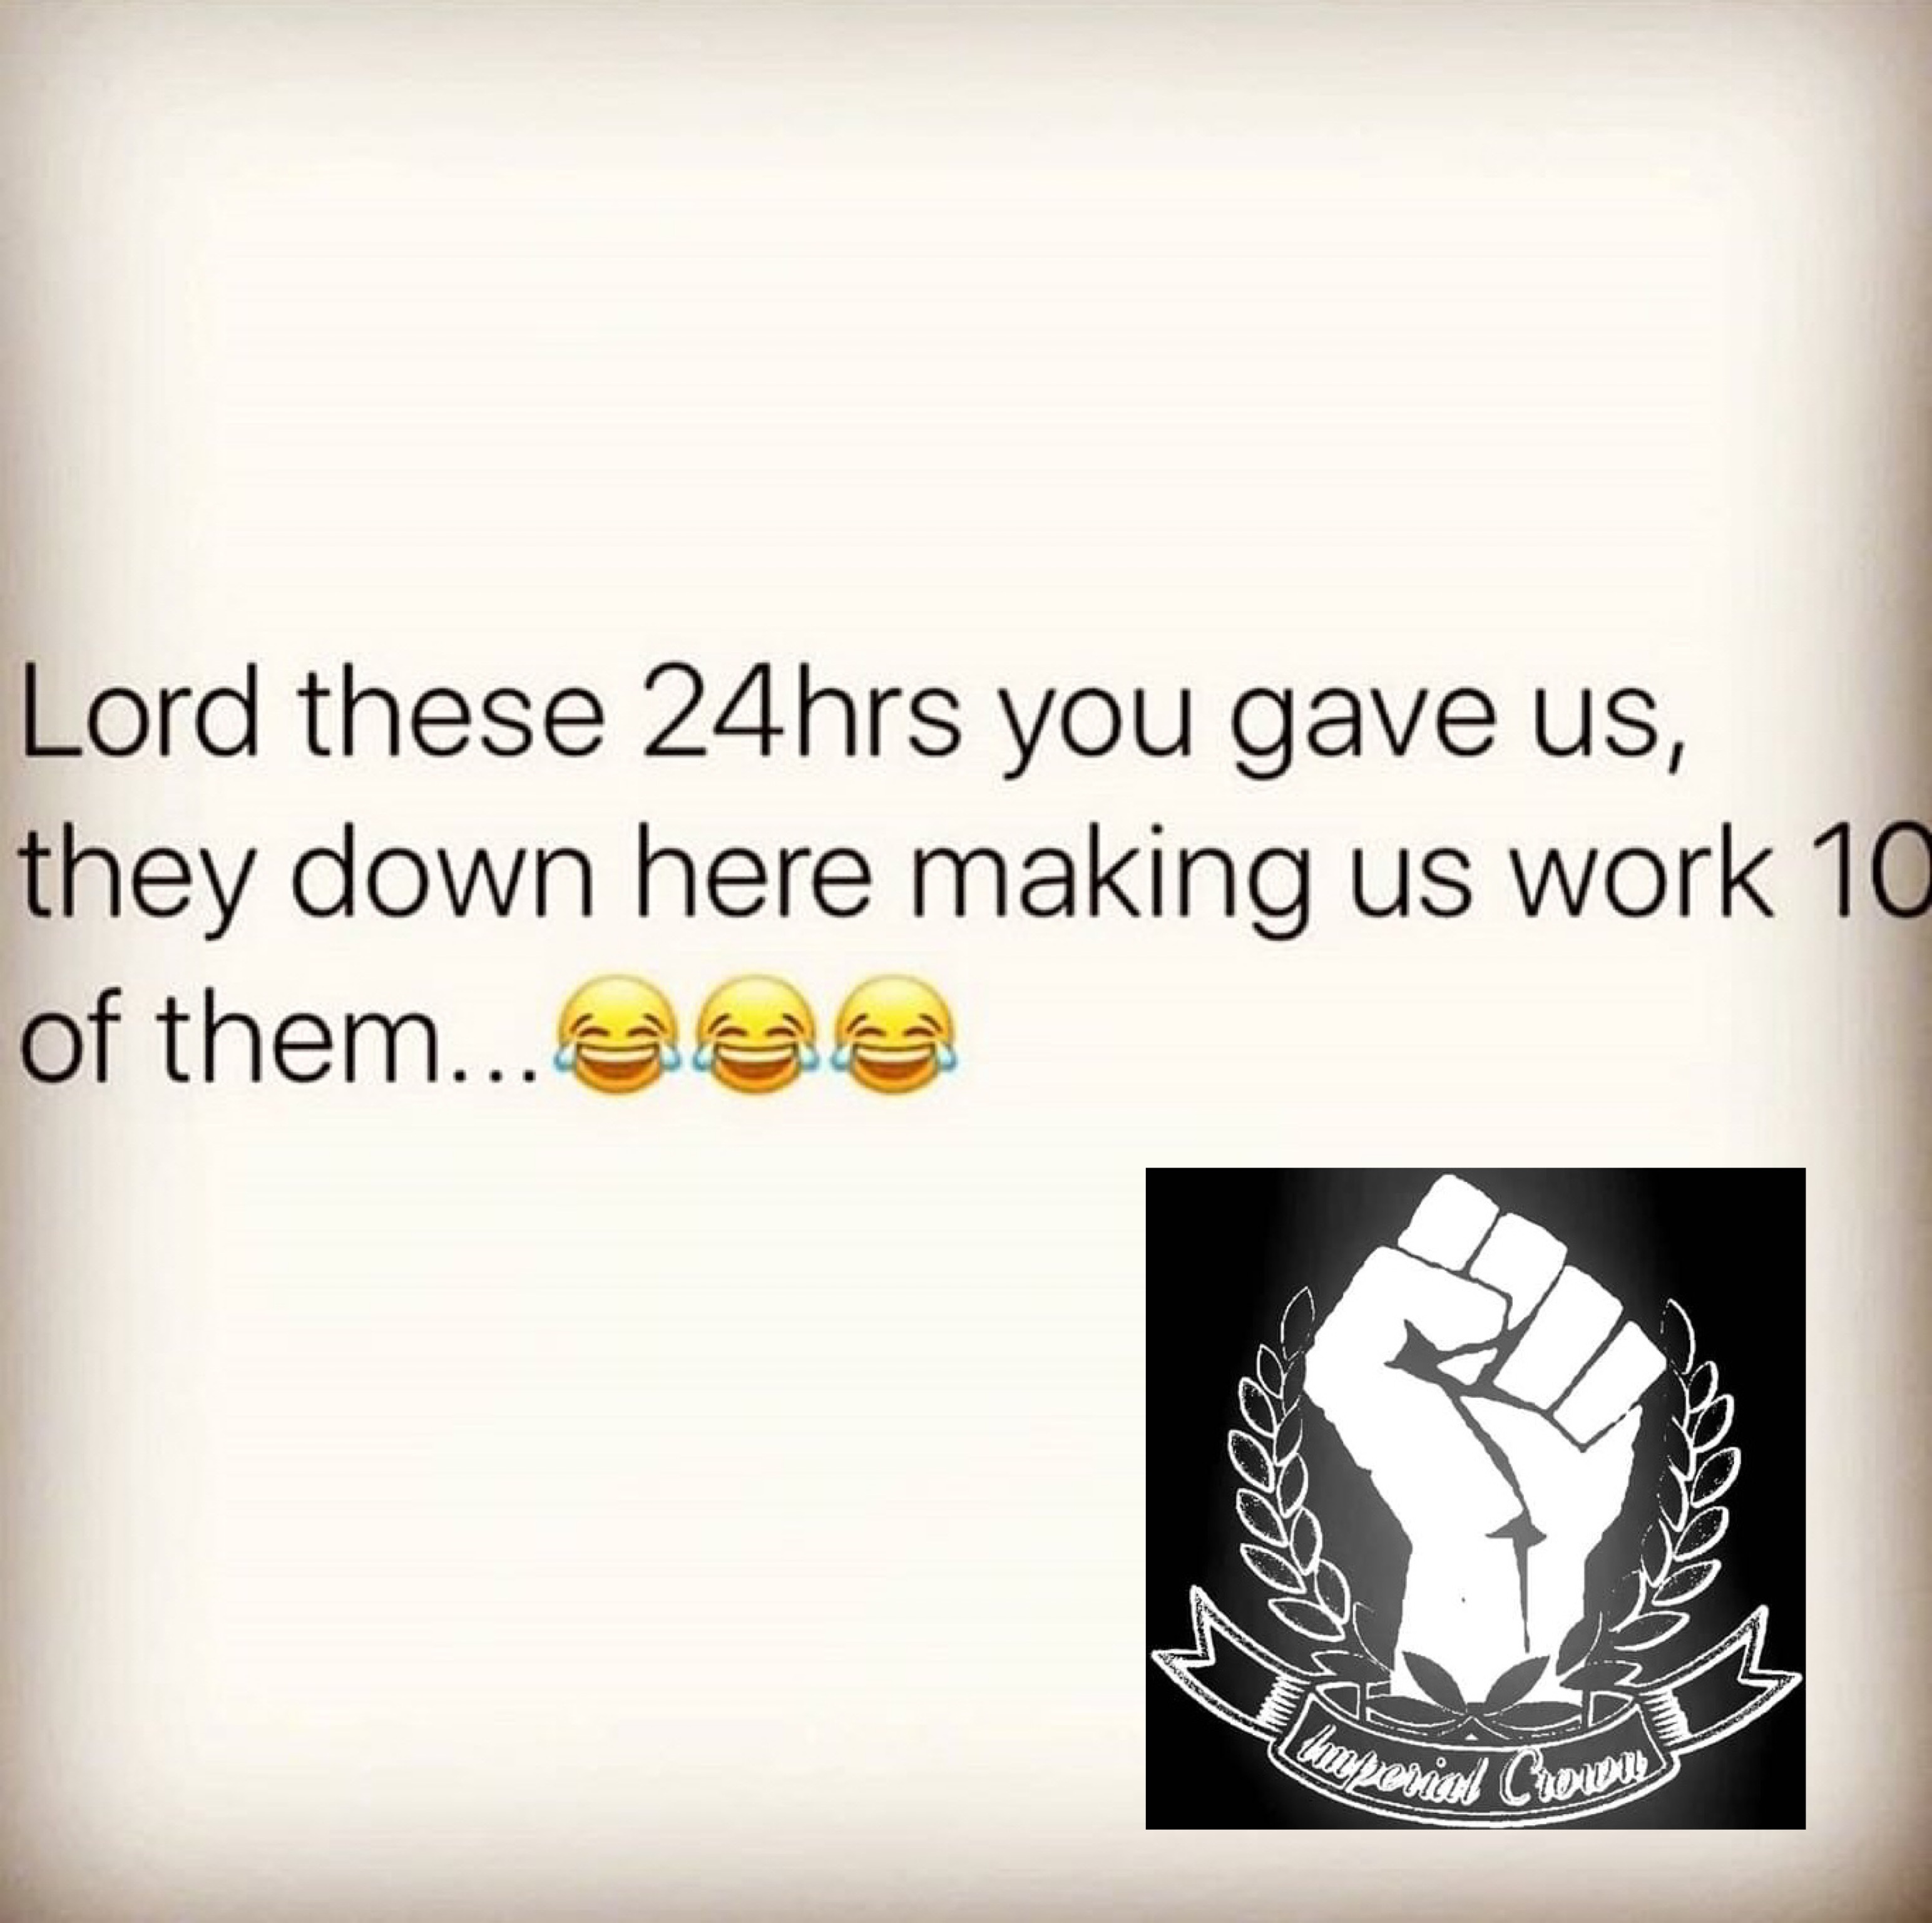 Lord these 24hrs you gave us they down here making us work 10 of them